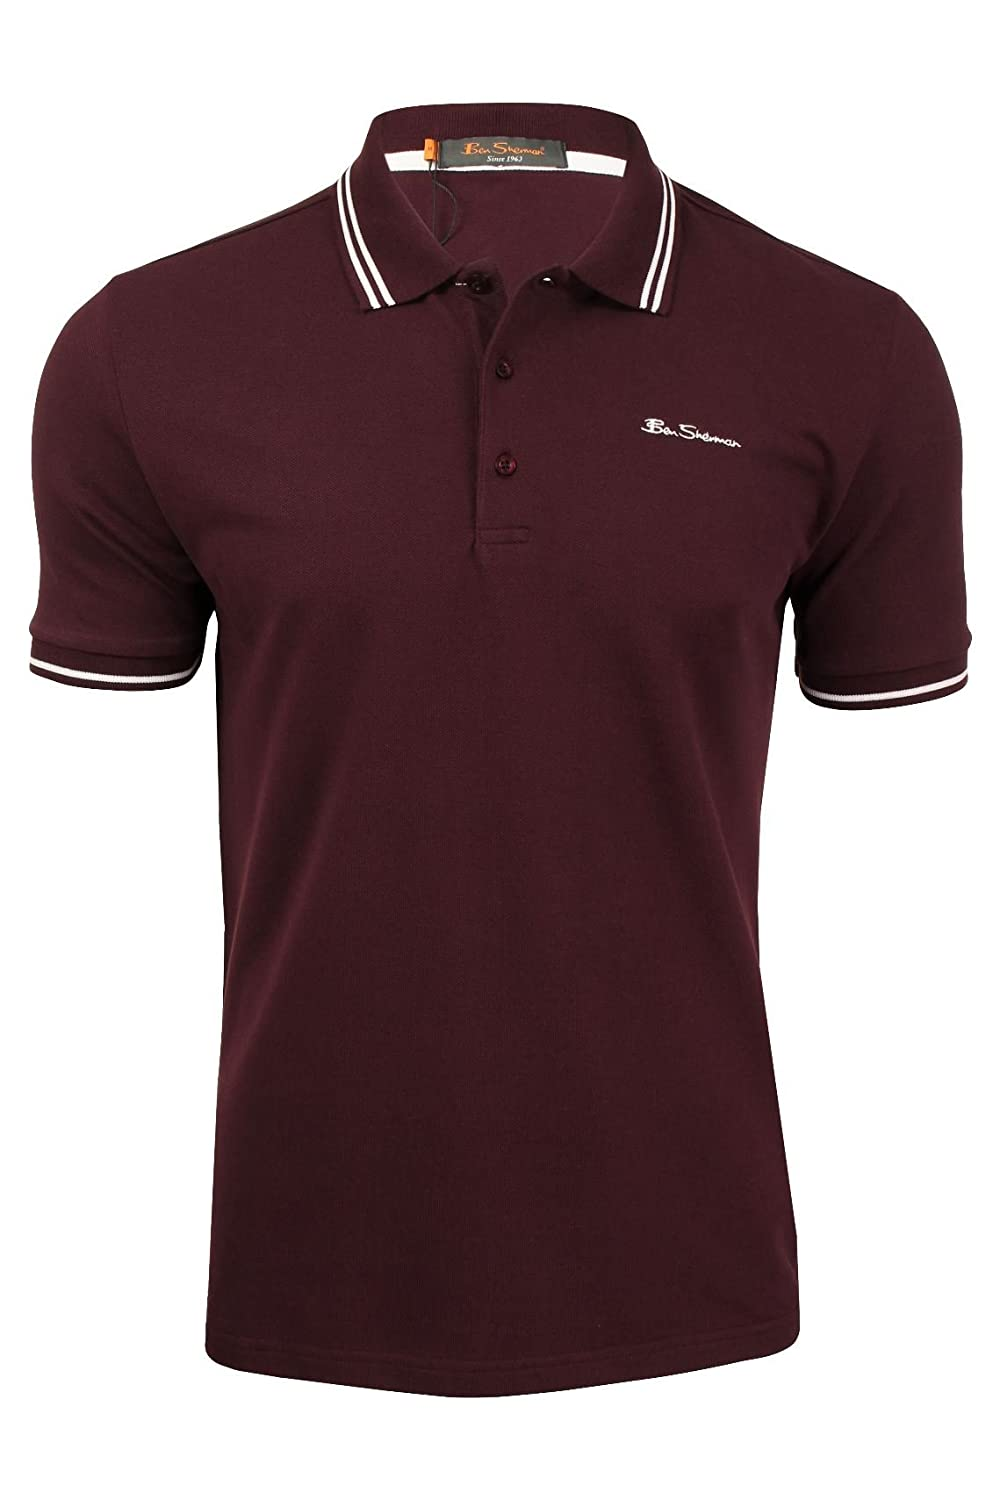 BEN SHERMAN CLAIC Tipped Pique Polo Tops y Camisetas Hombres ...